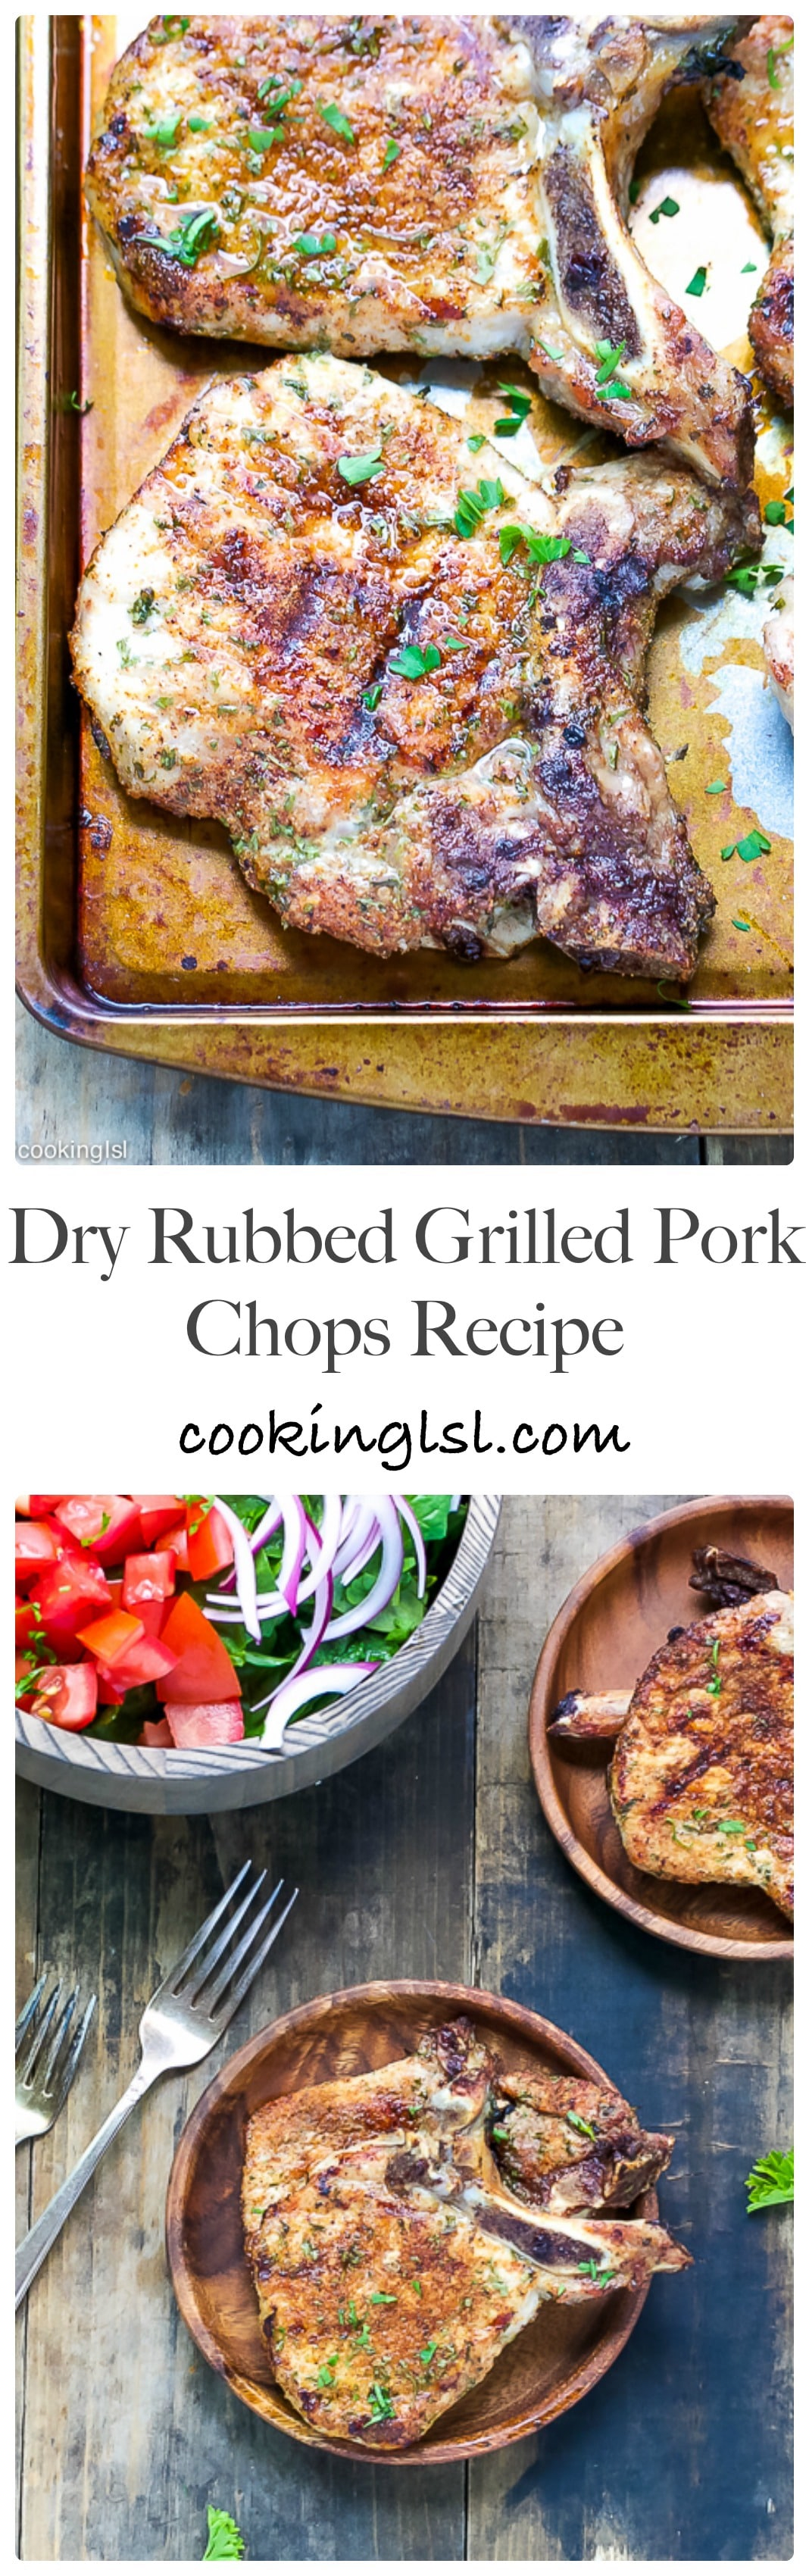 Dry-Rubbed-Grilled-Pork-Chops-Recipe